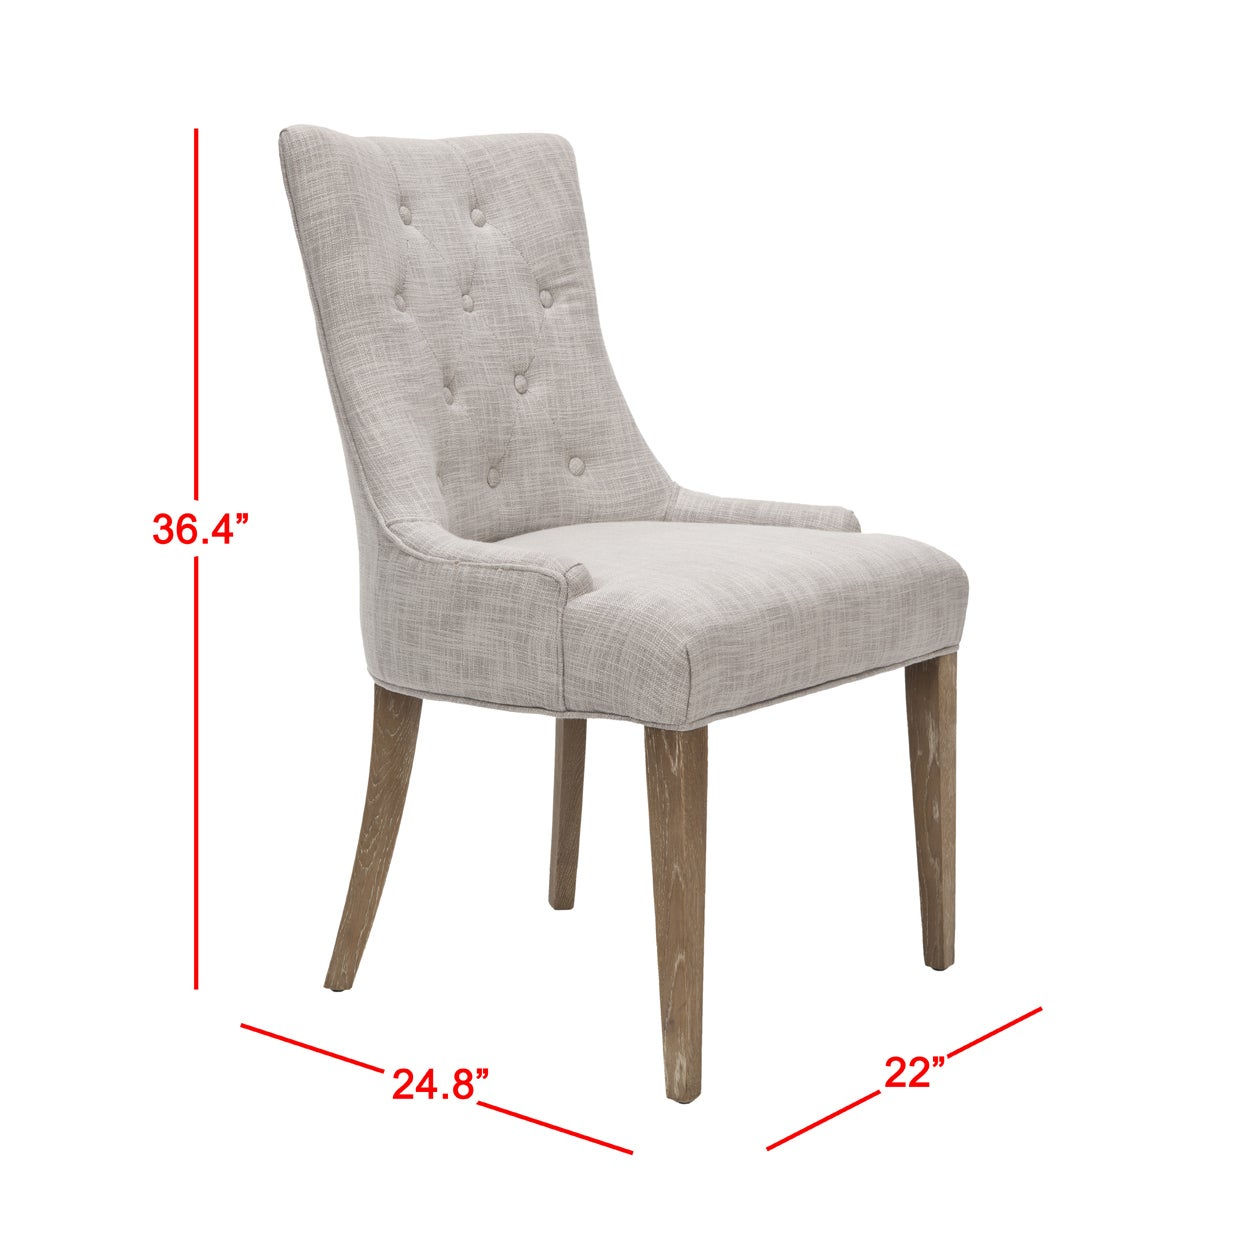 Shop safavieh en vogue dining becca grey viscose weathered oak finish dining chair free shipping today overstock com 6430750